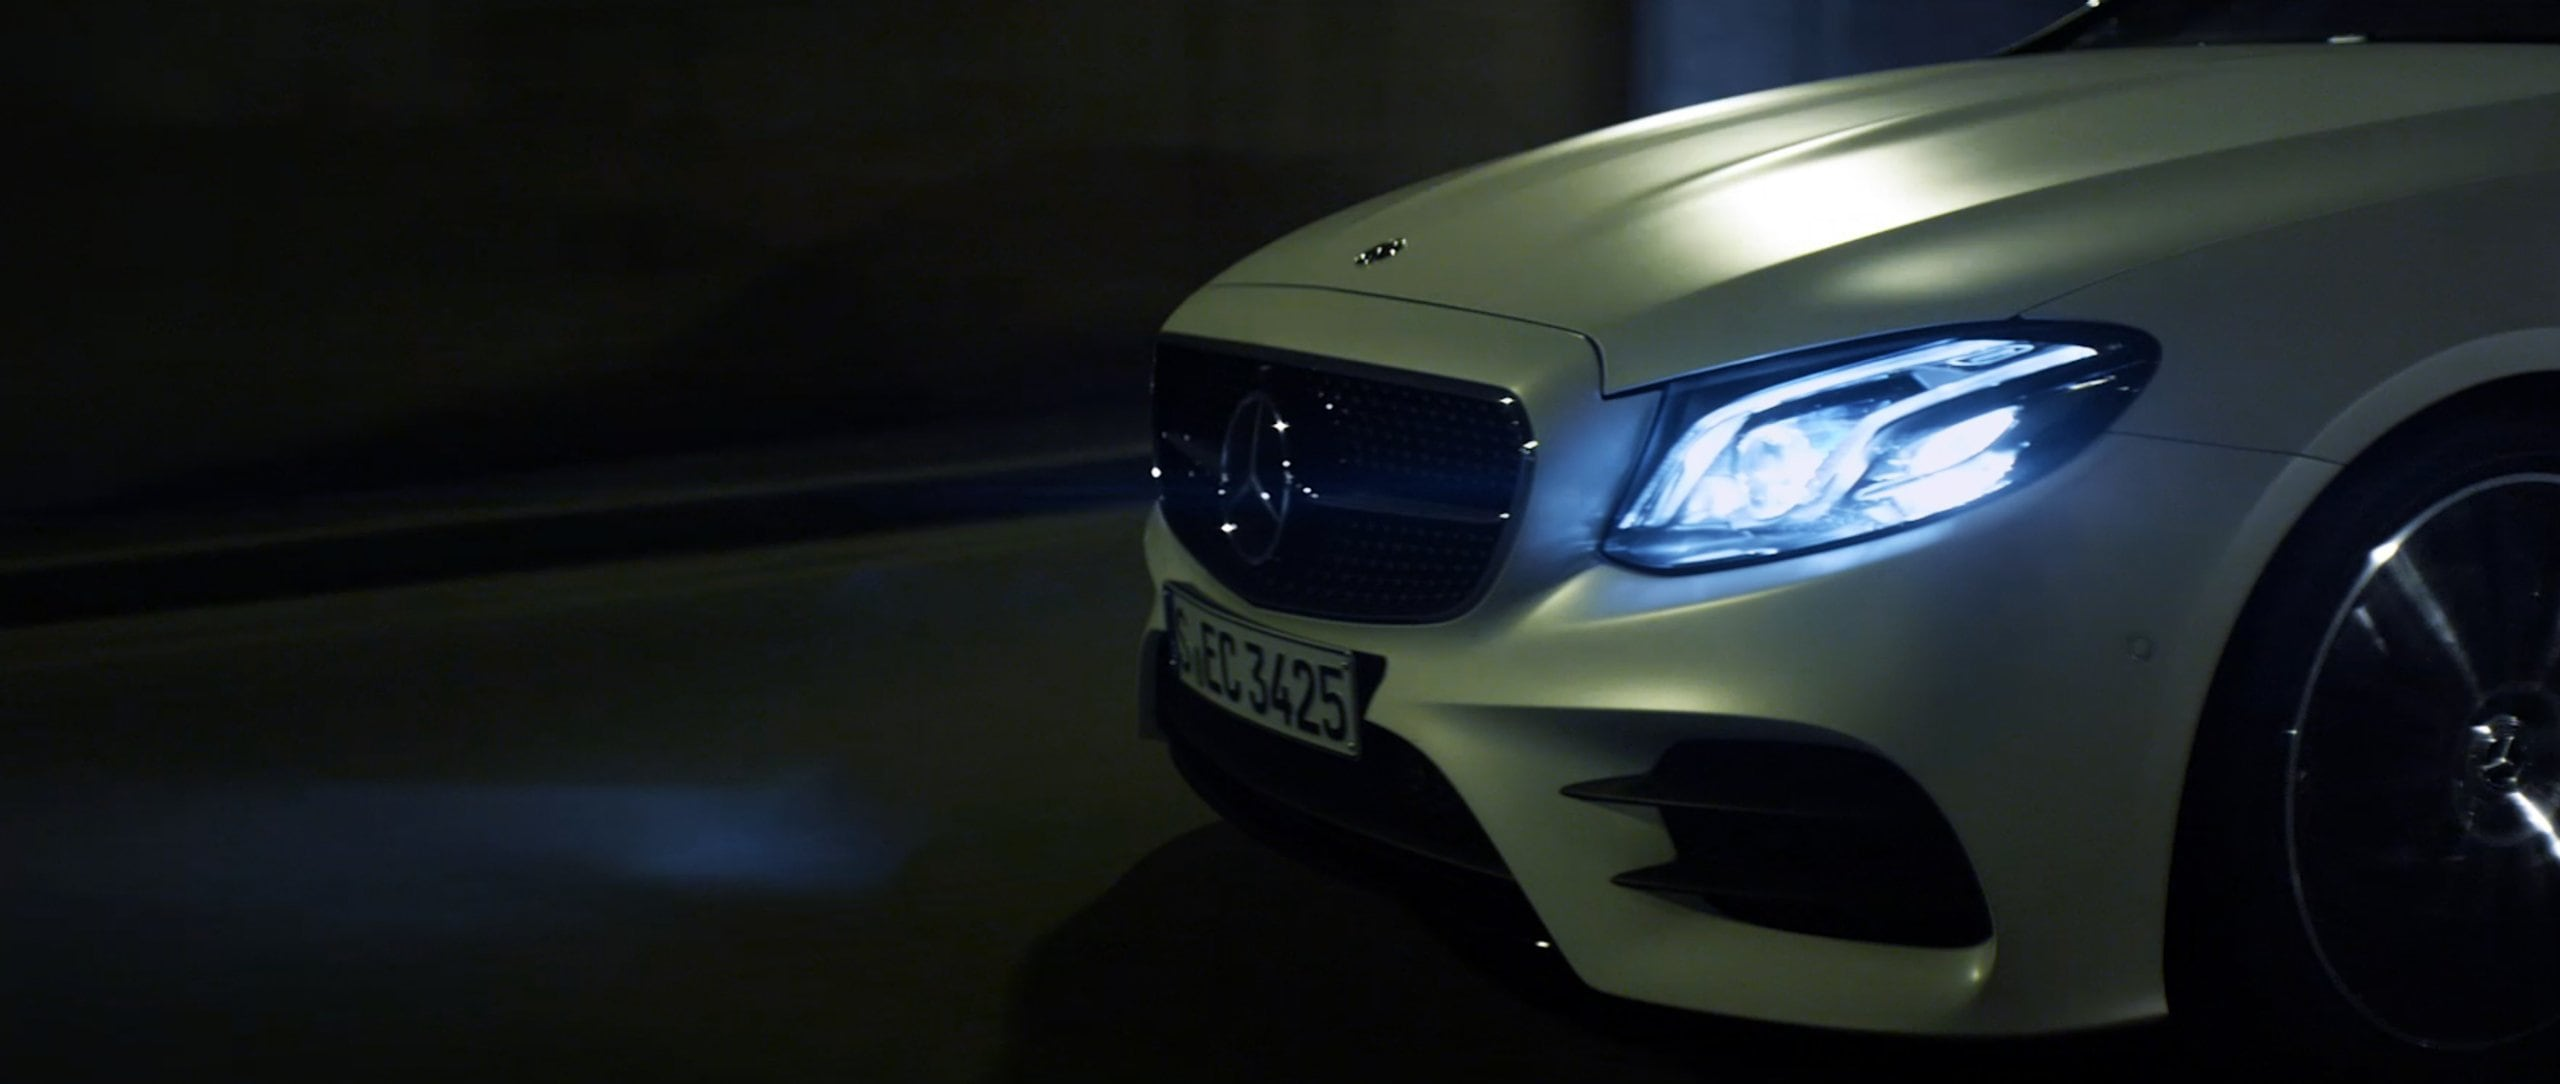 With the new Mercedes-Benz E 400 4MATIC Coupé (C 238) through the night in Barcelona.